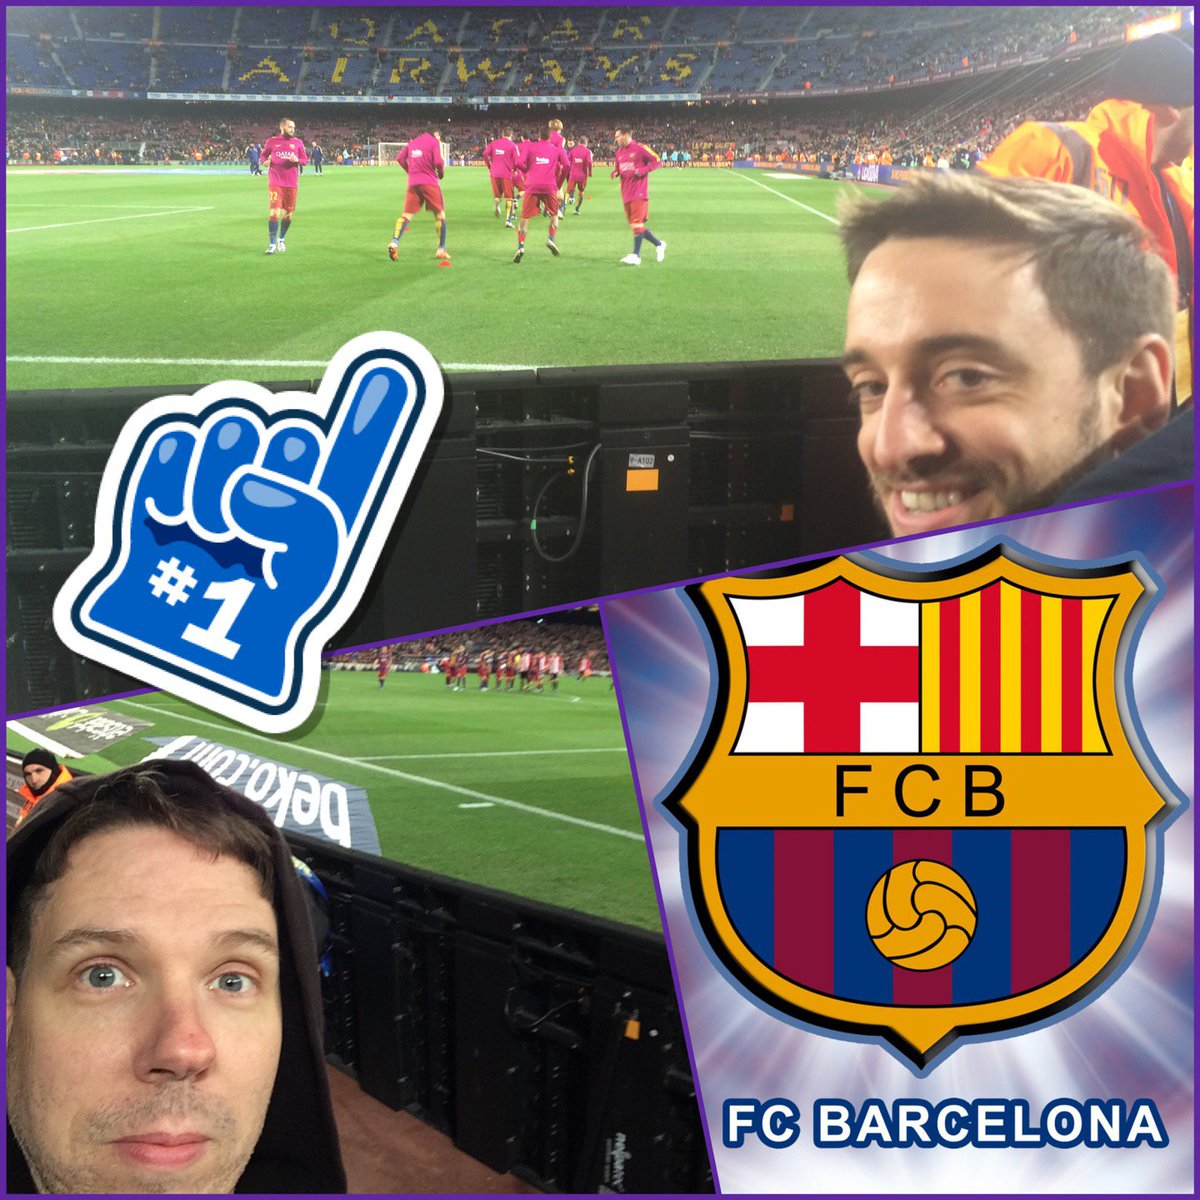 In Barcelona with Mike watching my 1st soccer game! Was a good high scoring game but... https://t.co/HPZQUvVKIf https://t.co/cRXGhx5ri9